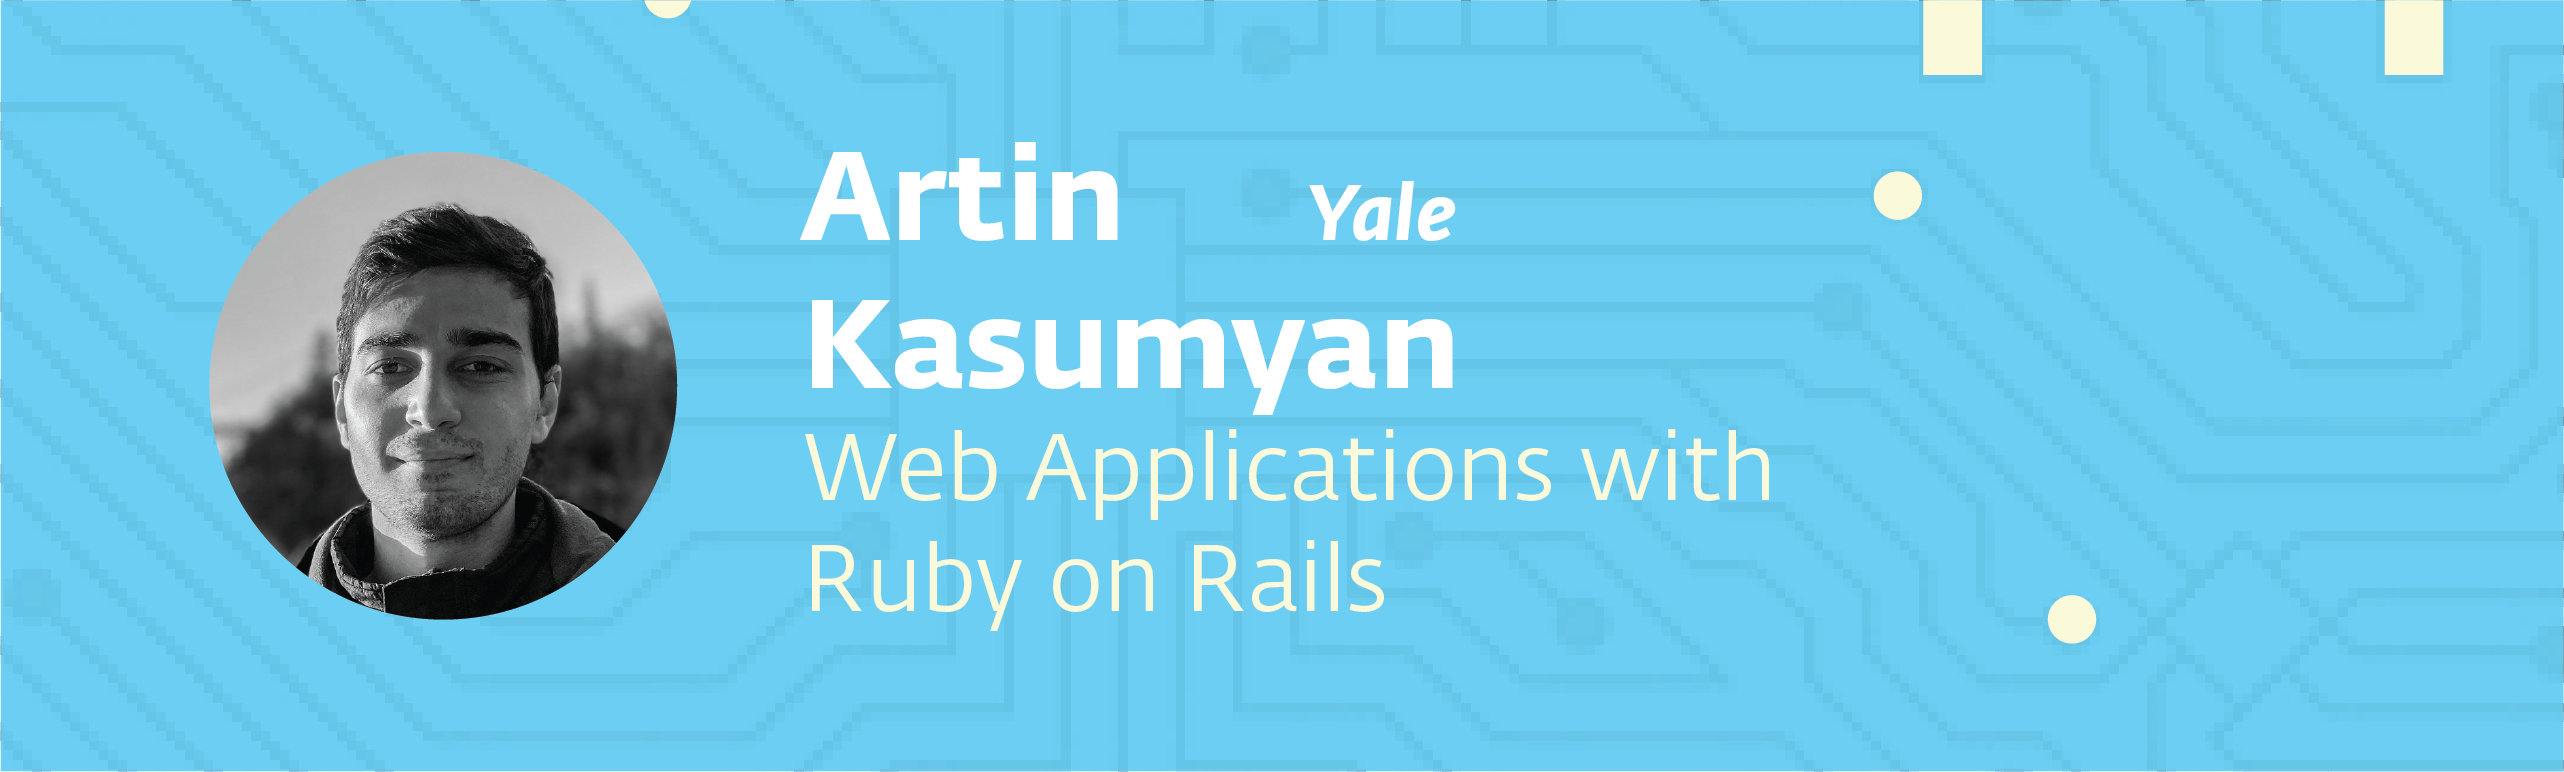 NewBanner for Page 11 - Web applications with Ruby on Rails